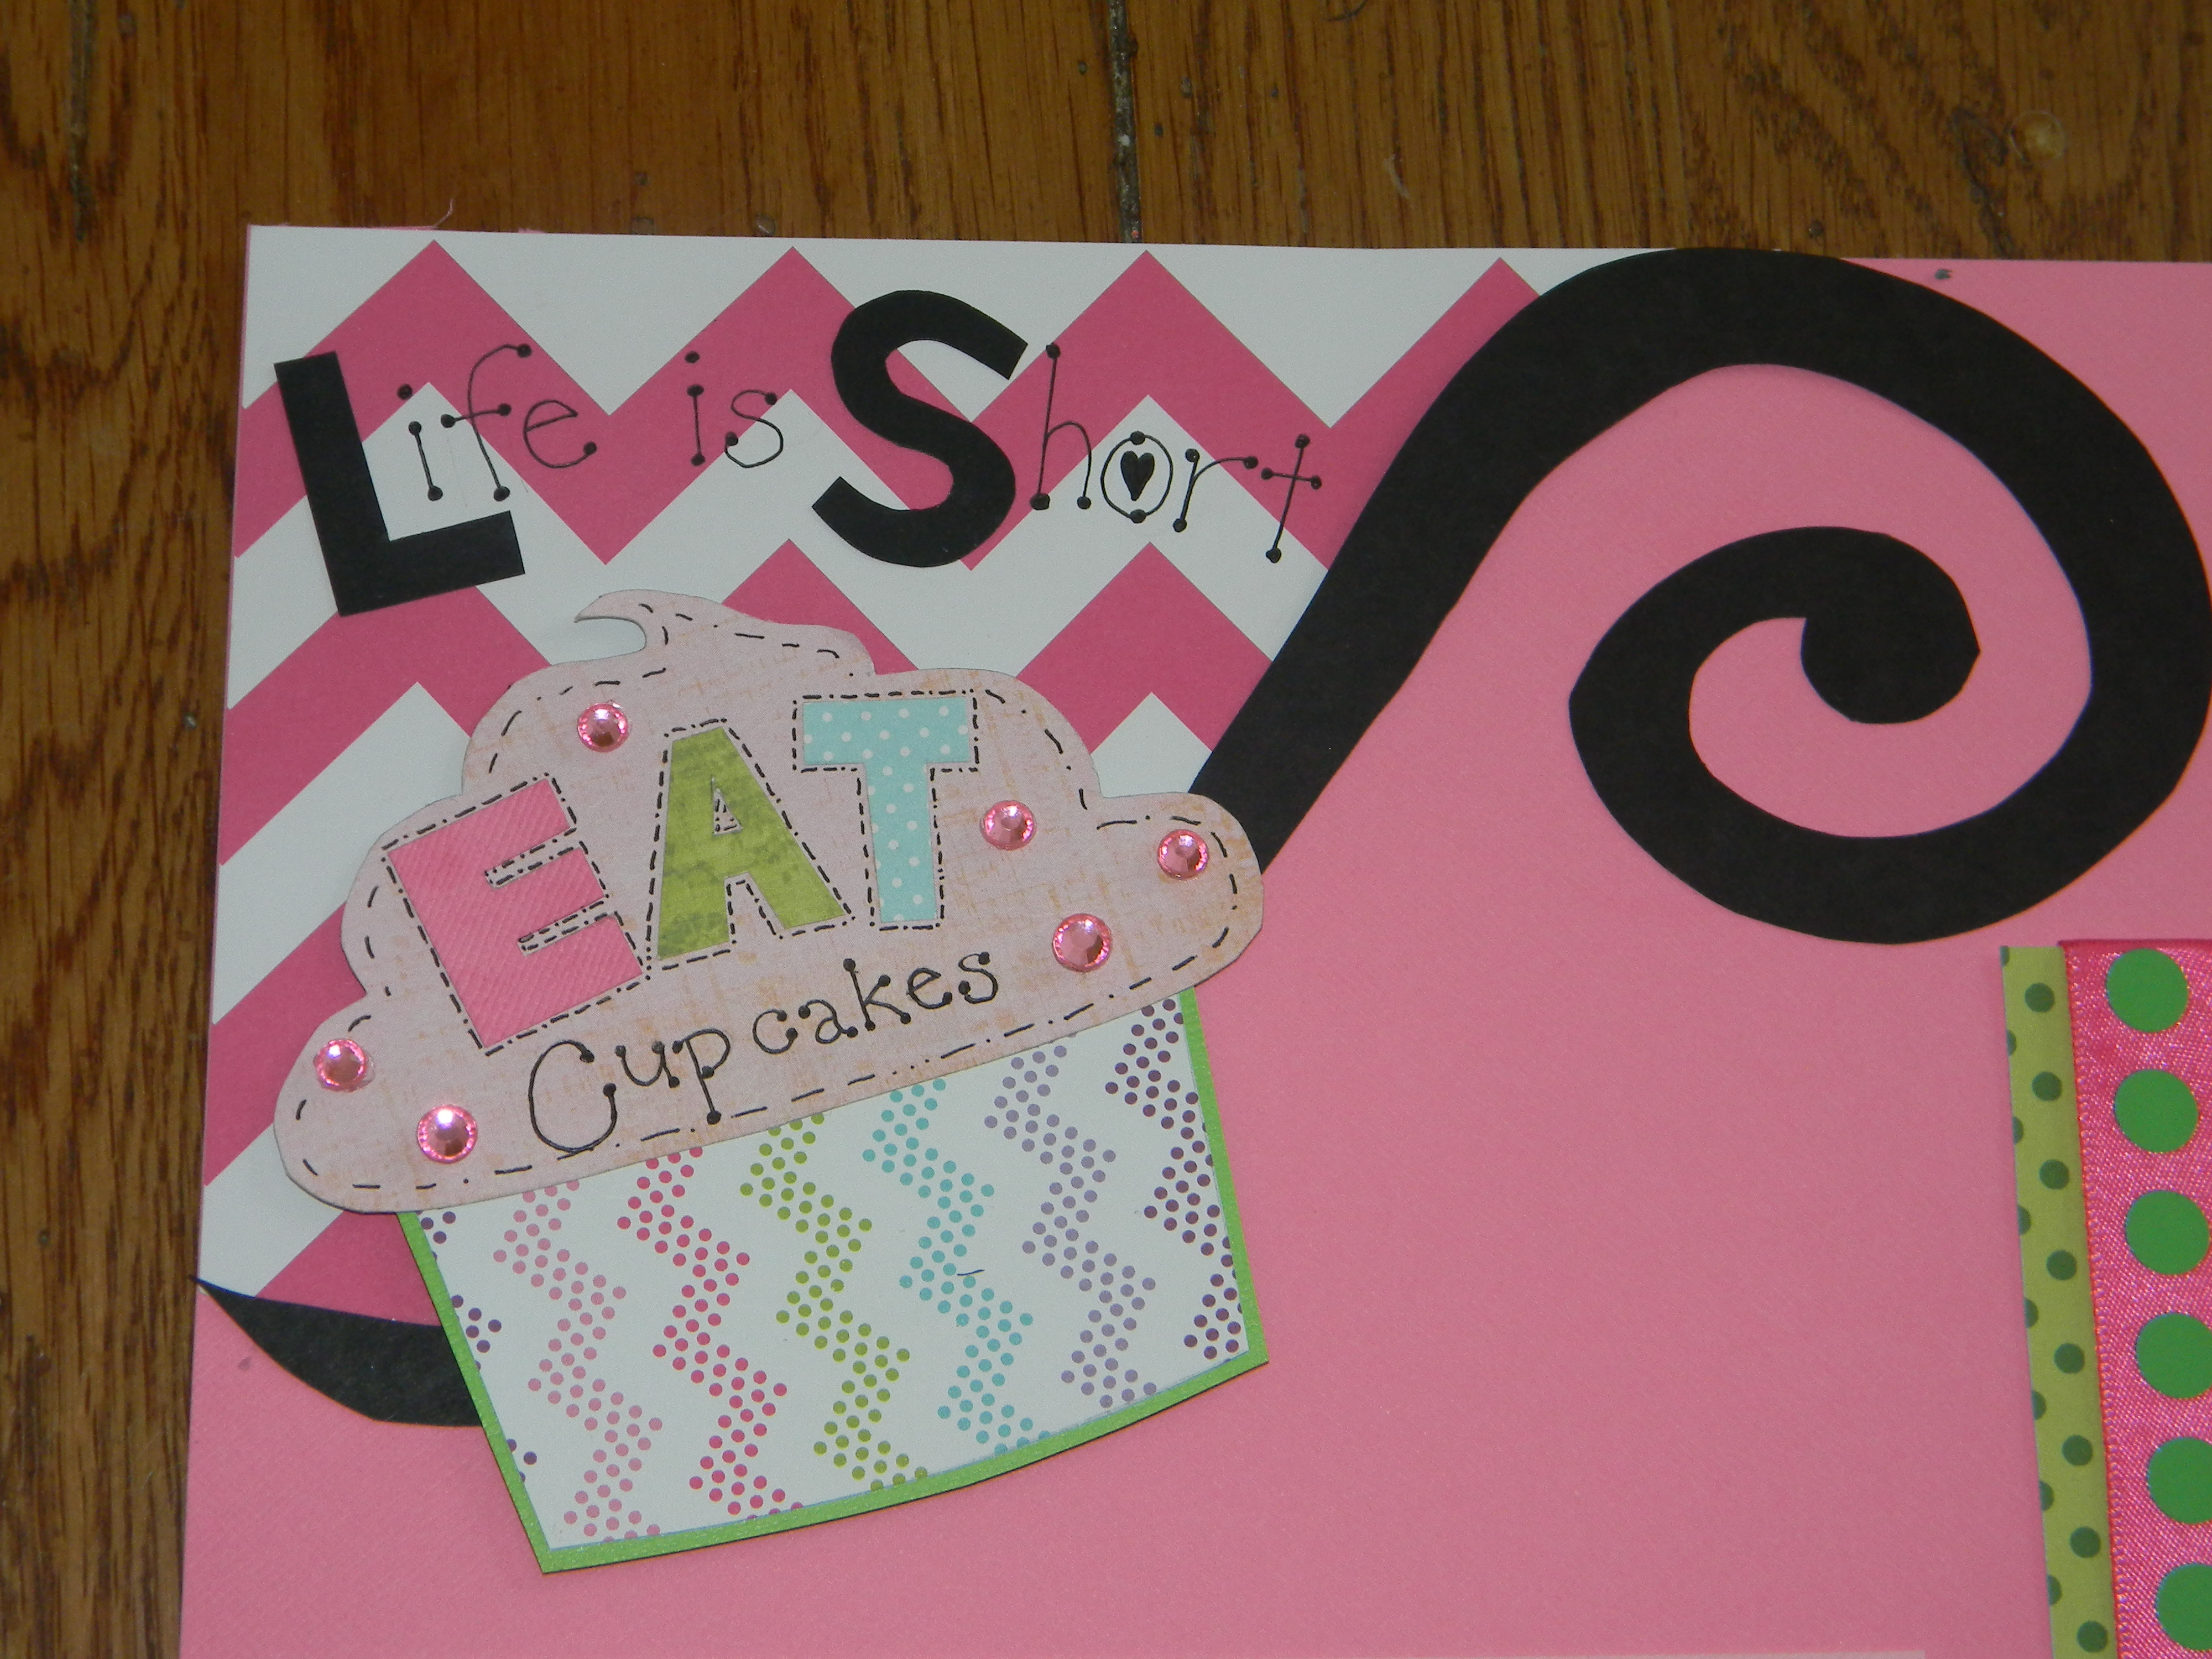 How to scrapbook pages - Cupcake Scrapbook Layout Title